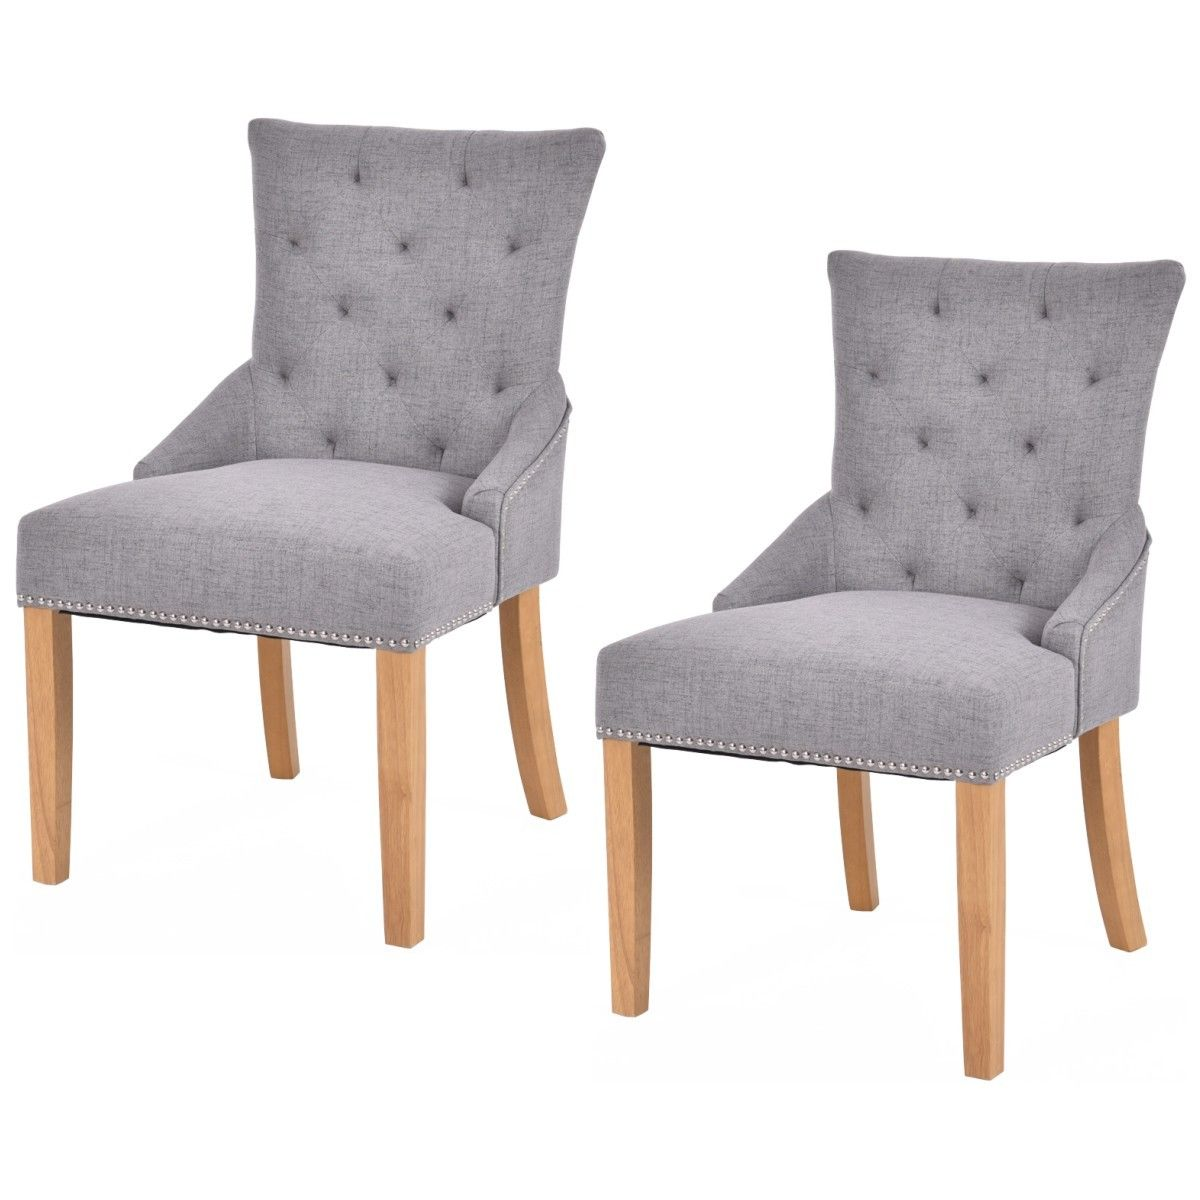 Giantex Set Of 2 Armless Dining Chairs Elegant Tufted Design Fabric Upholstered Sofa Chairs Modern Home Furniture HW53785 все цены